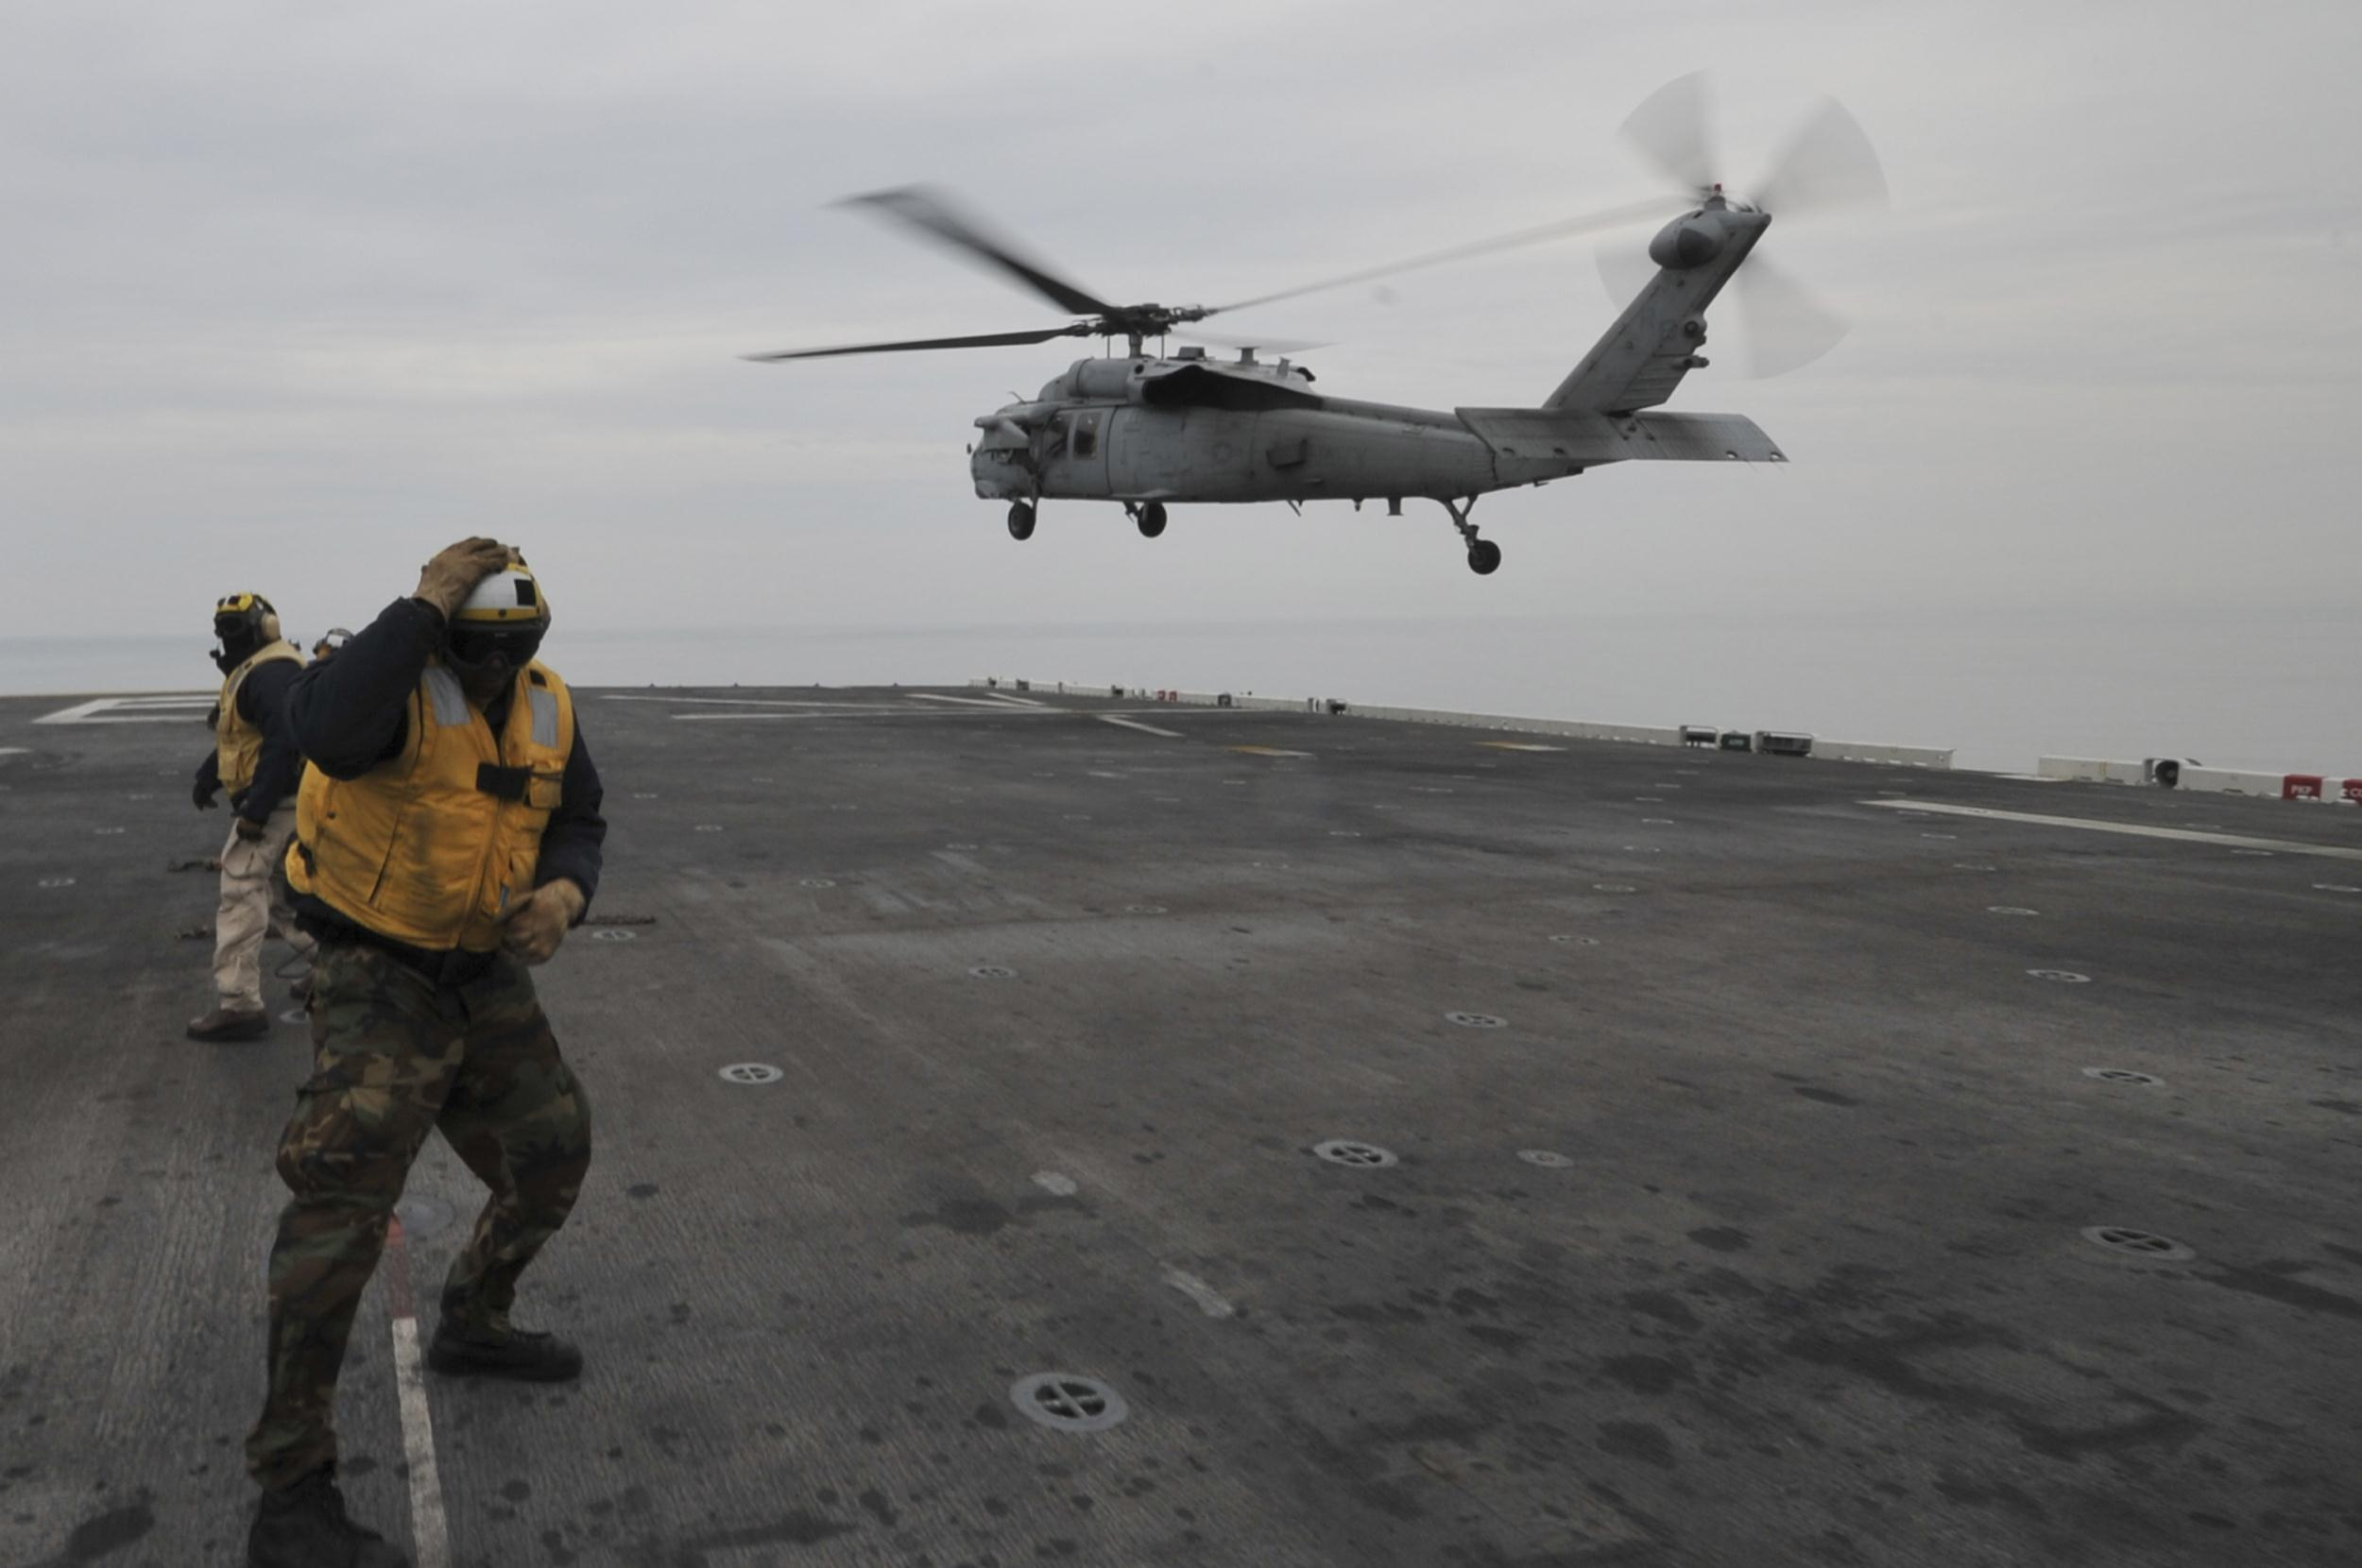 An MH-60S Sea Hawk helicopter lands on the flight deck of the forward-deployed amphibious assault ship USS Bonhomme Richard